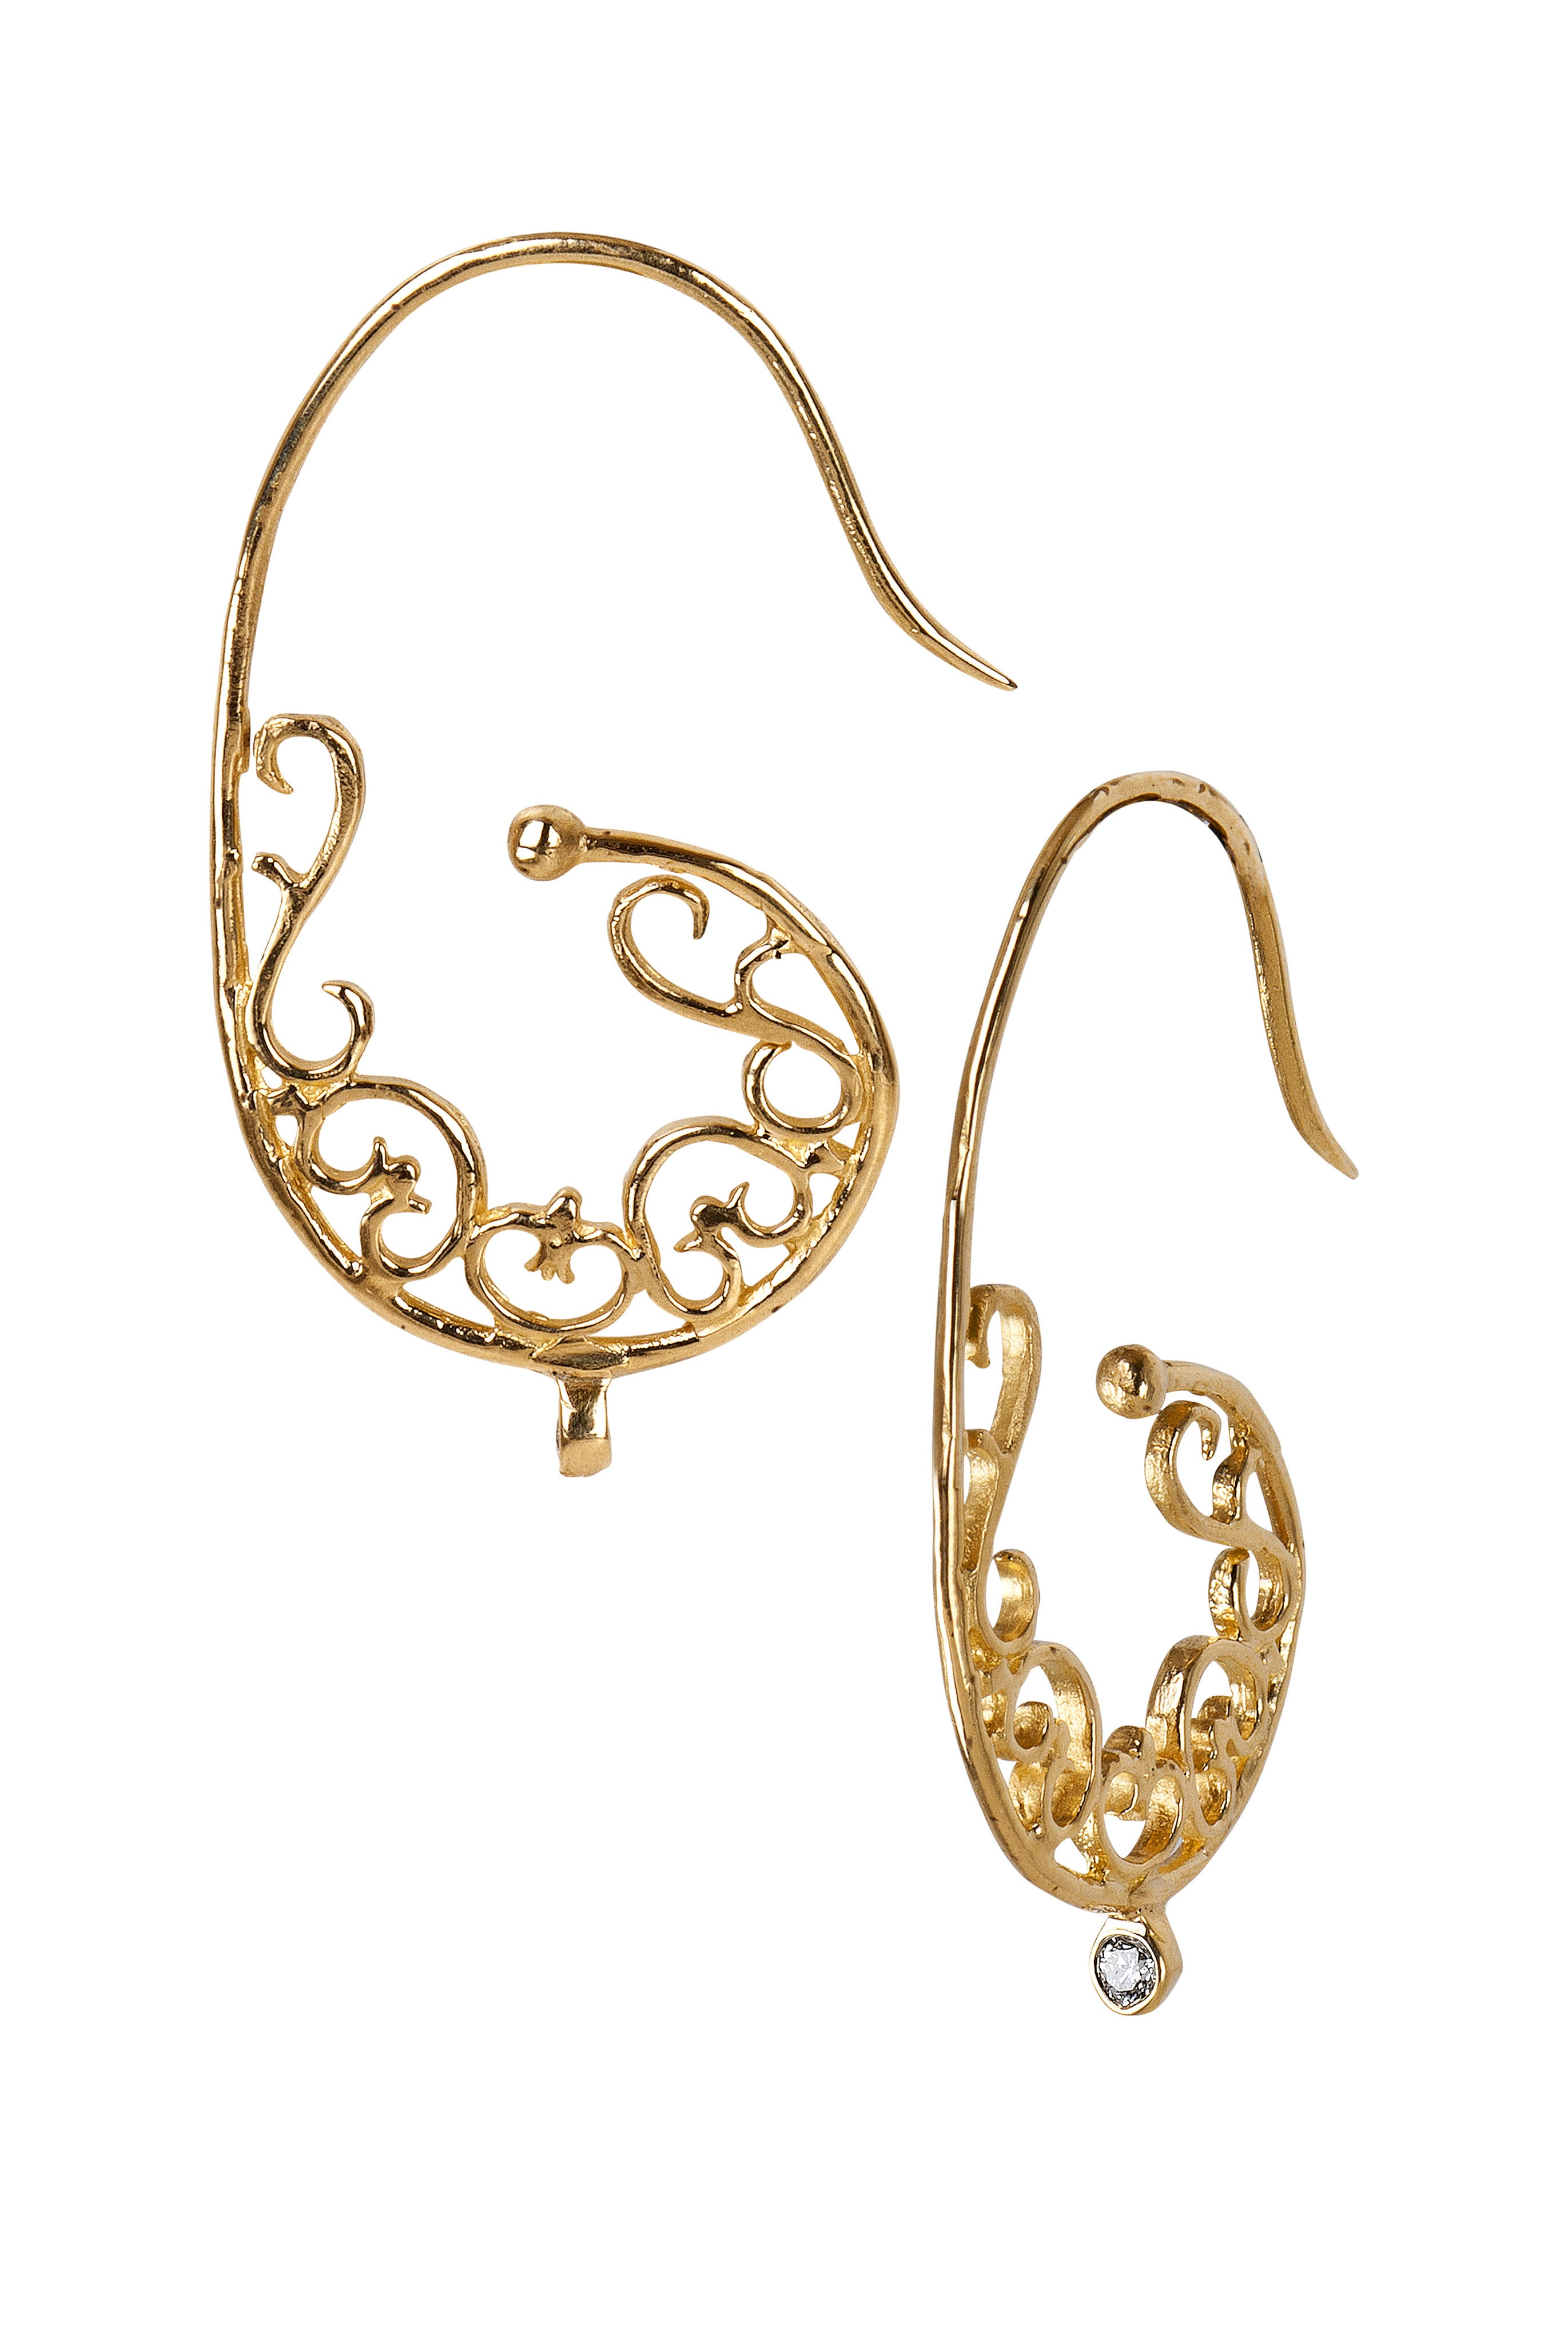 The Jewel - Just Jules - Lookbook - Gold Detail Earrings